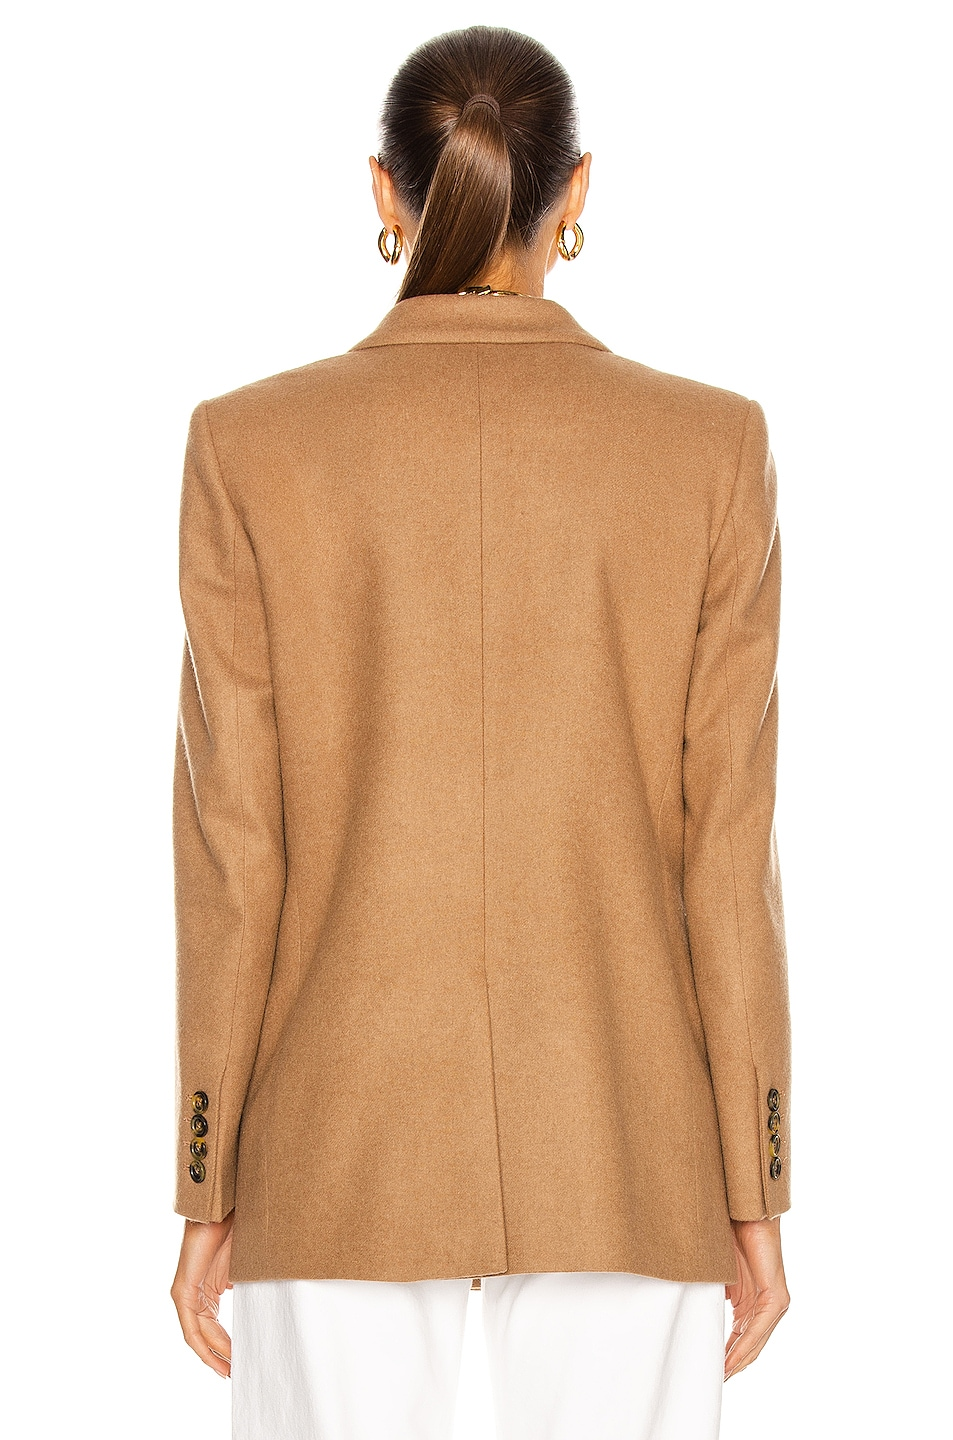 Image 4 of Blaze Milano Essential Cholita Everyday Blazer in Camel